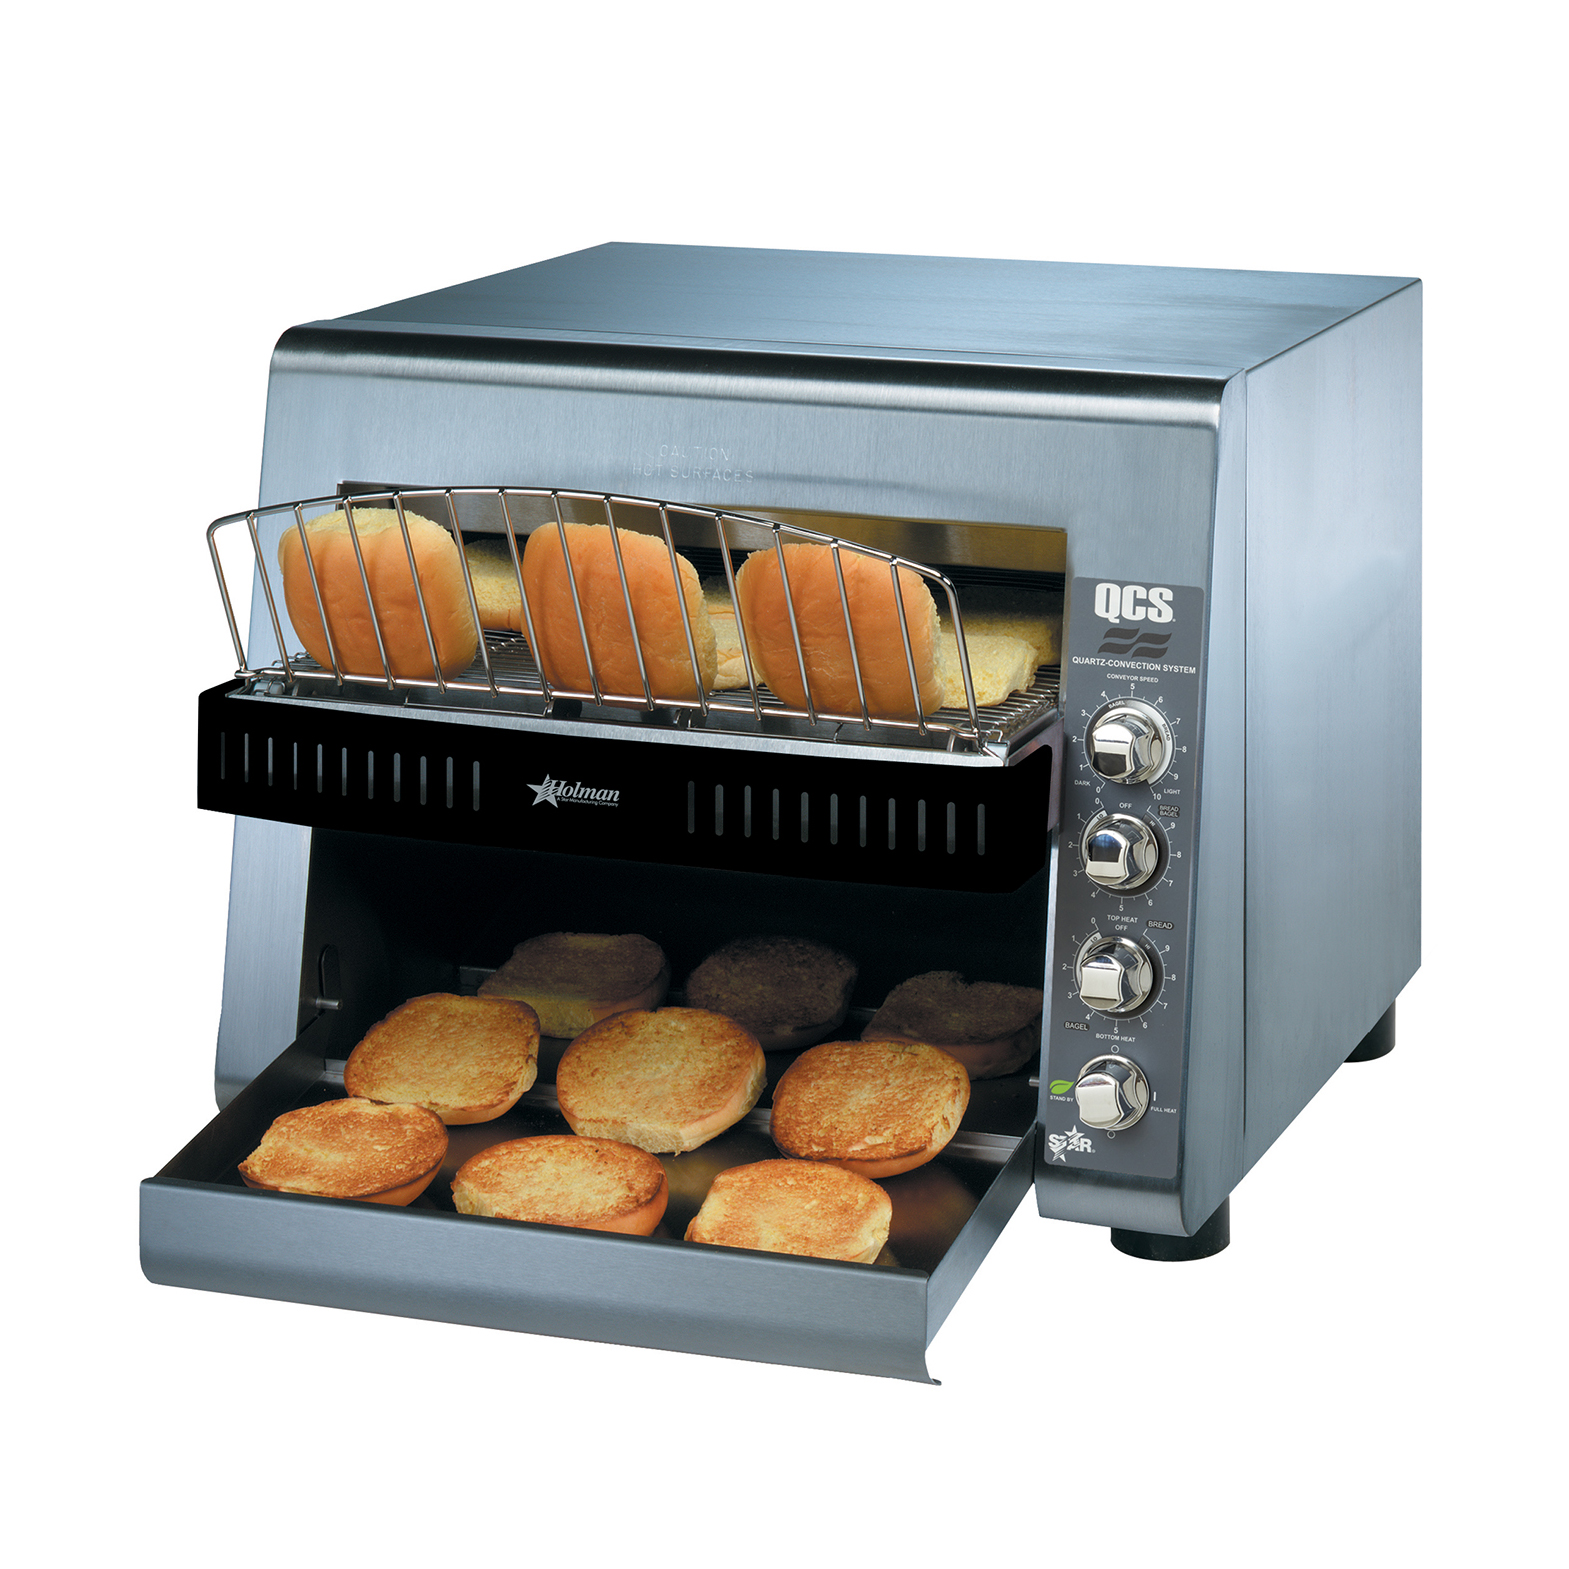 Star QCS3-1000 toaster, conveyor type